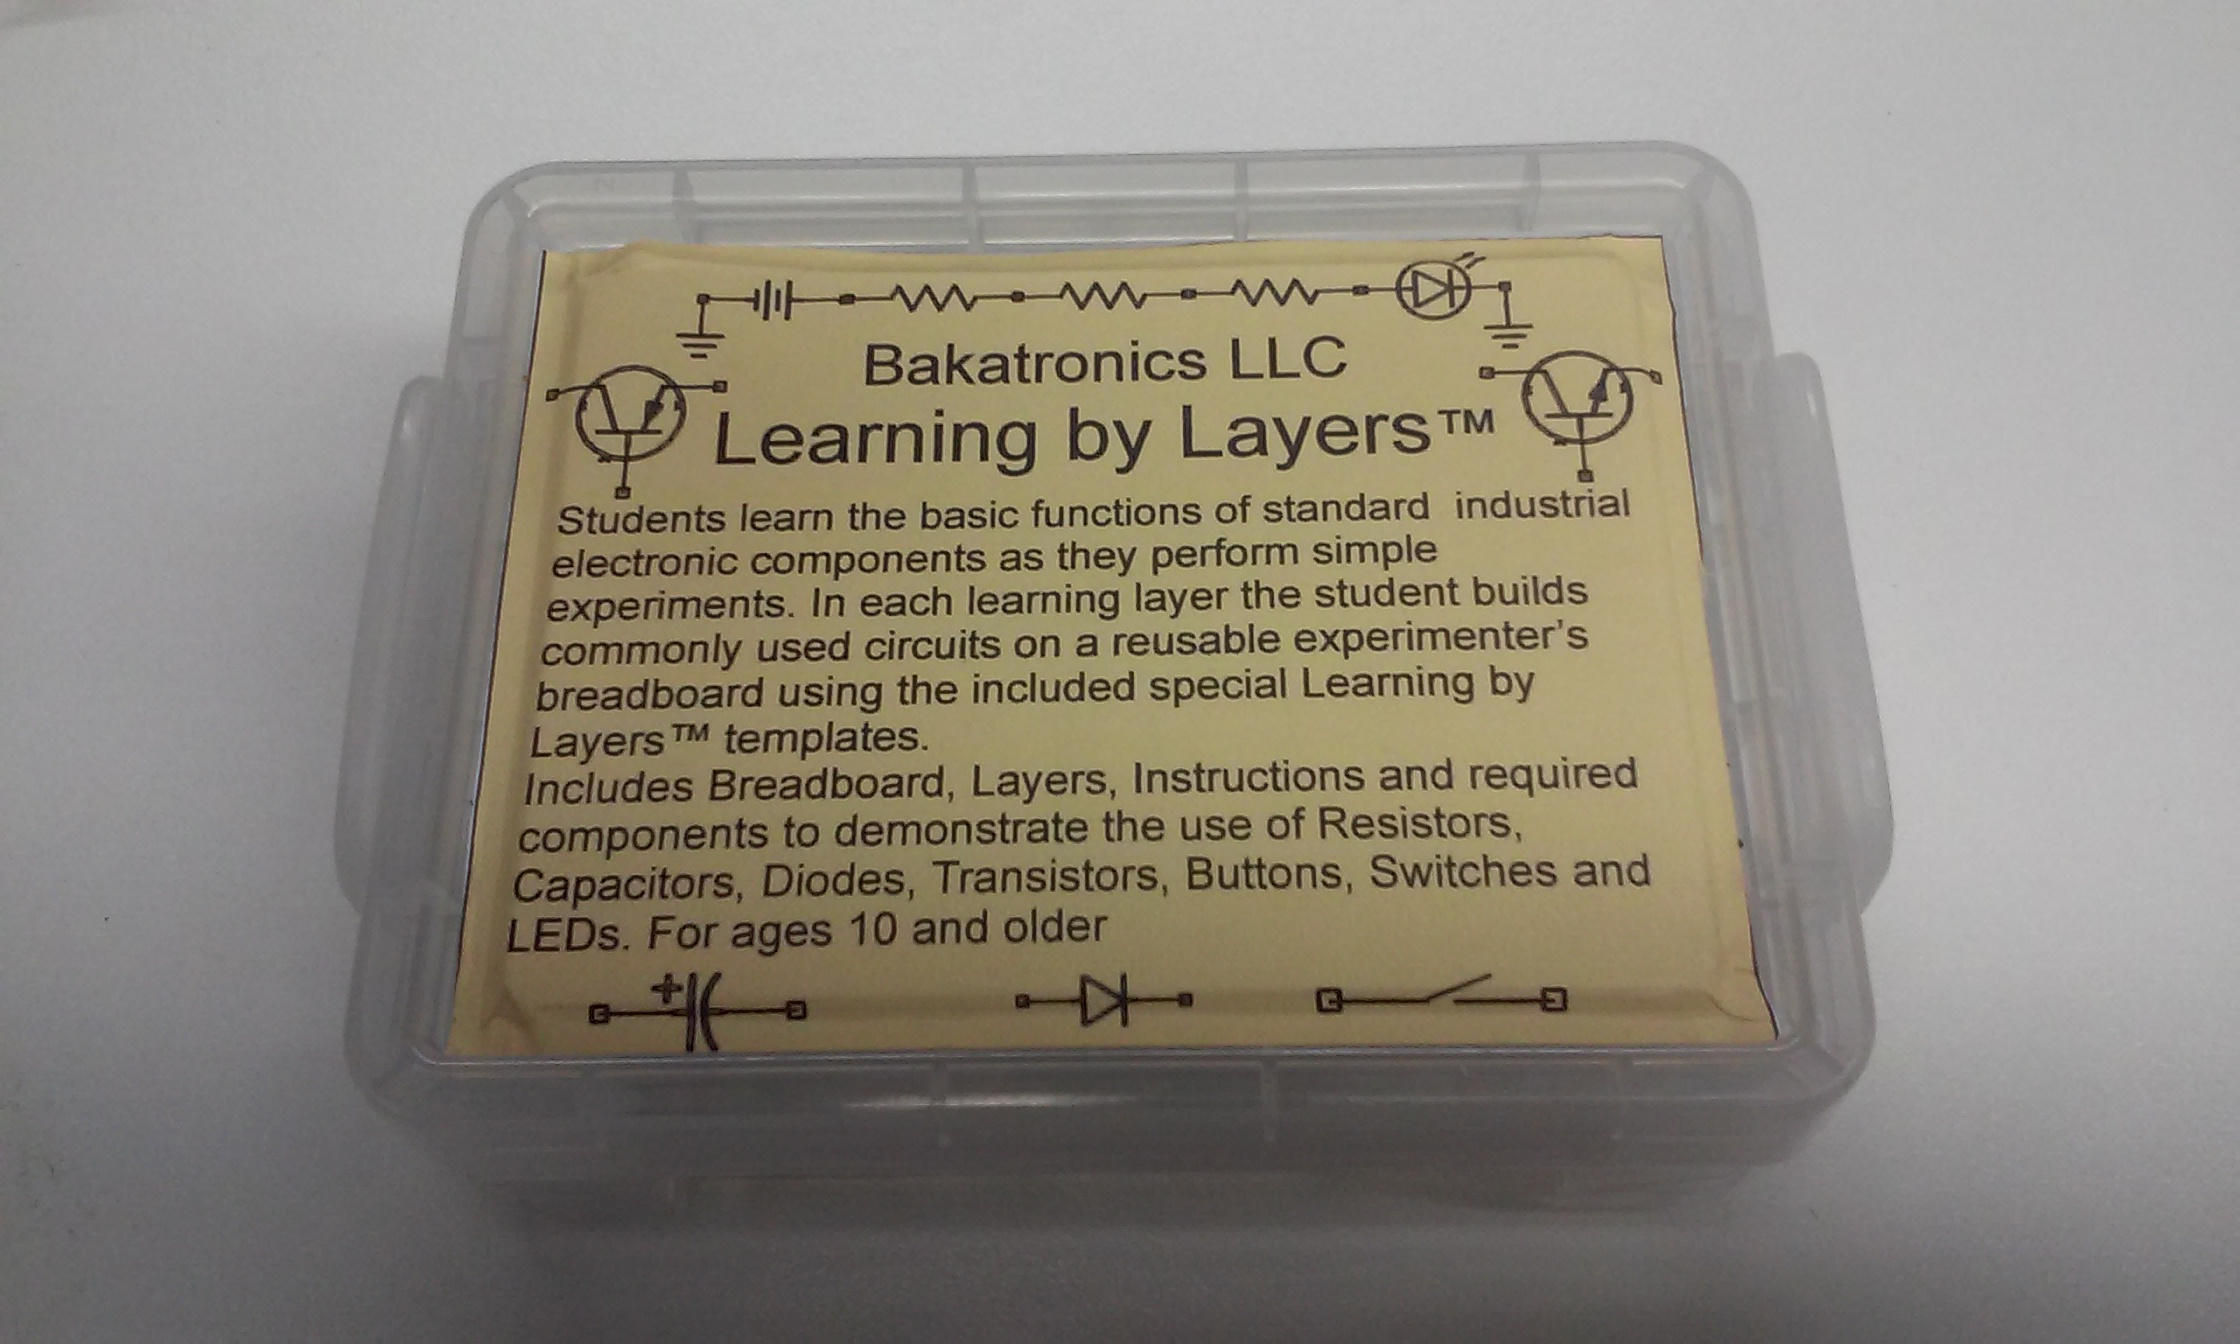 Learning by Layers